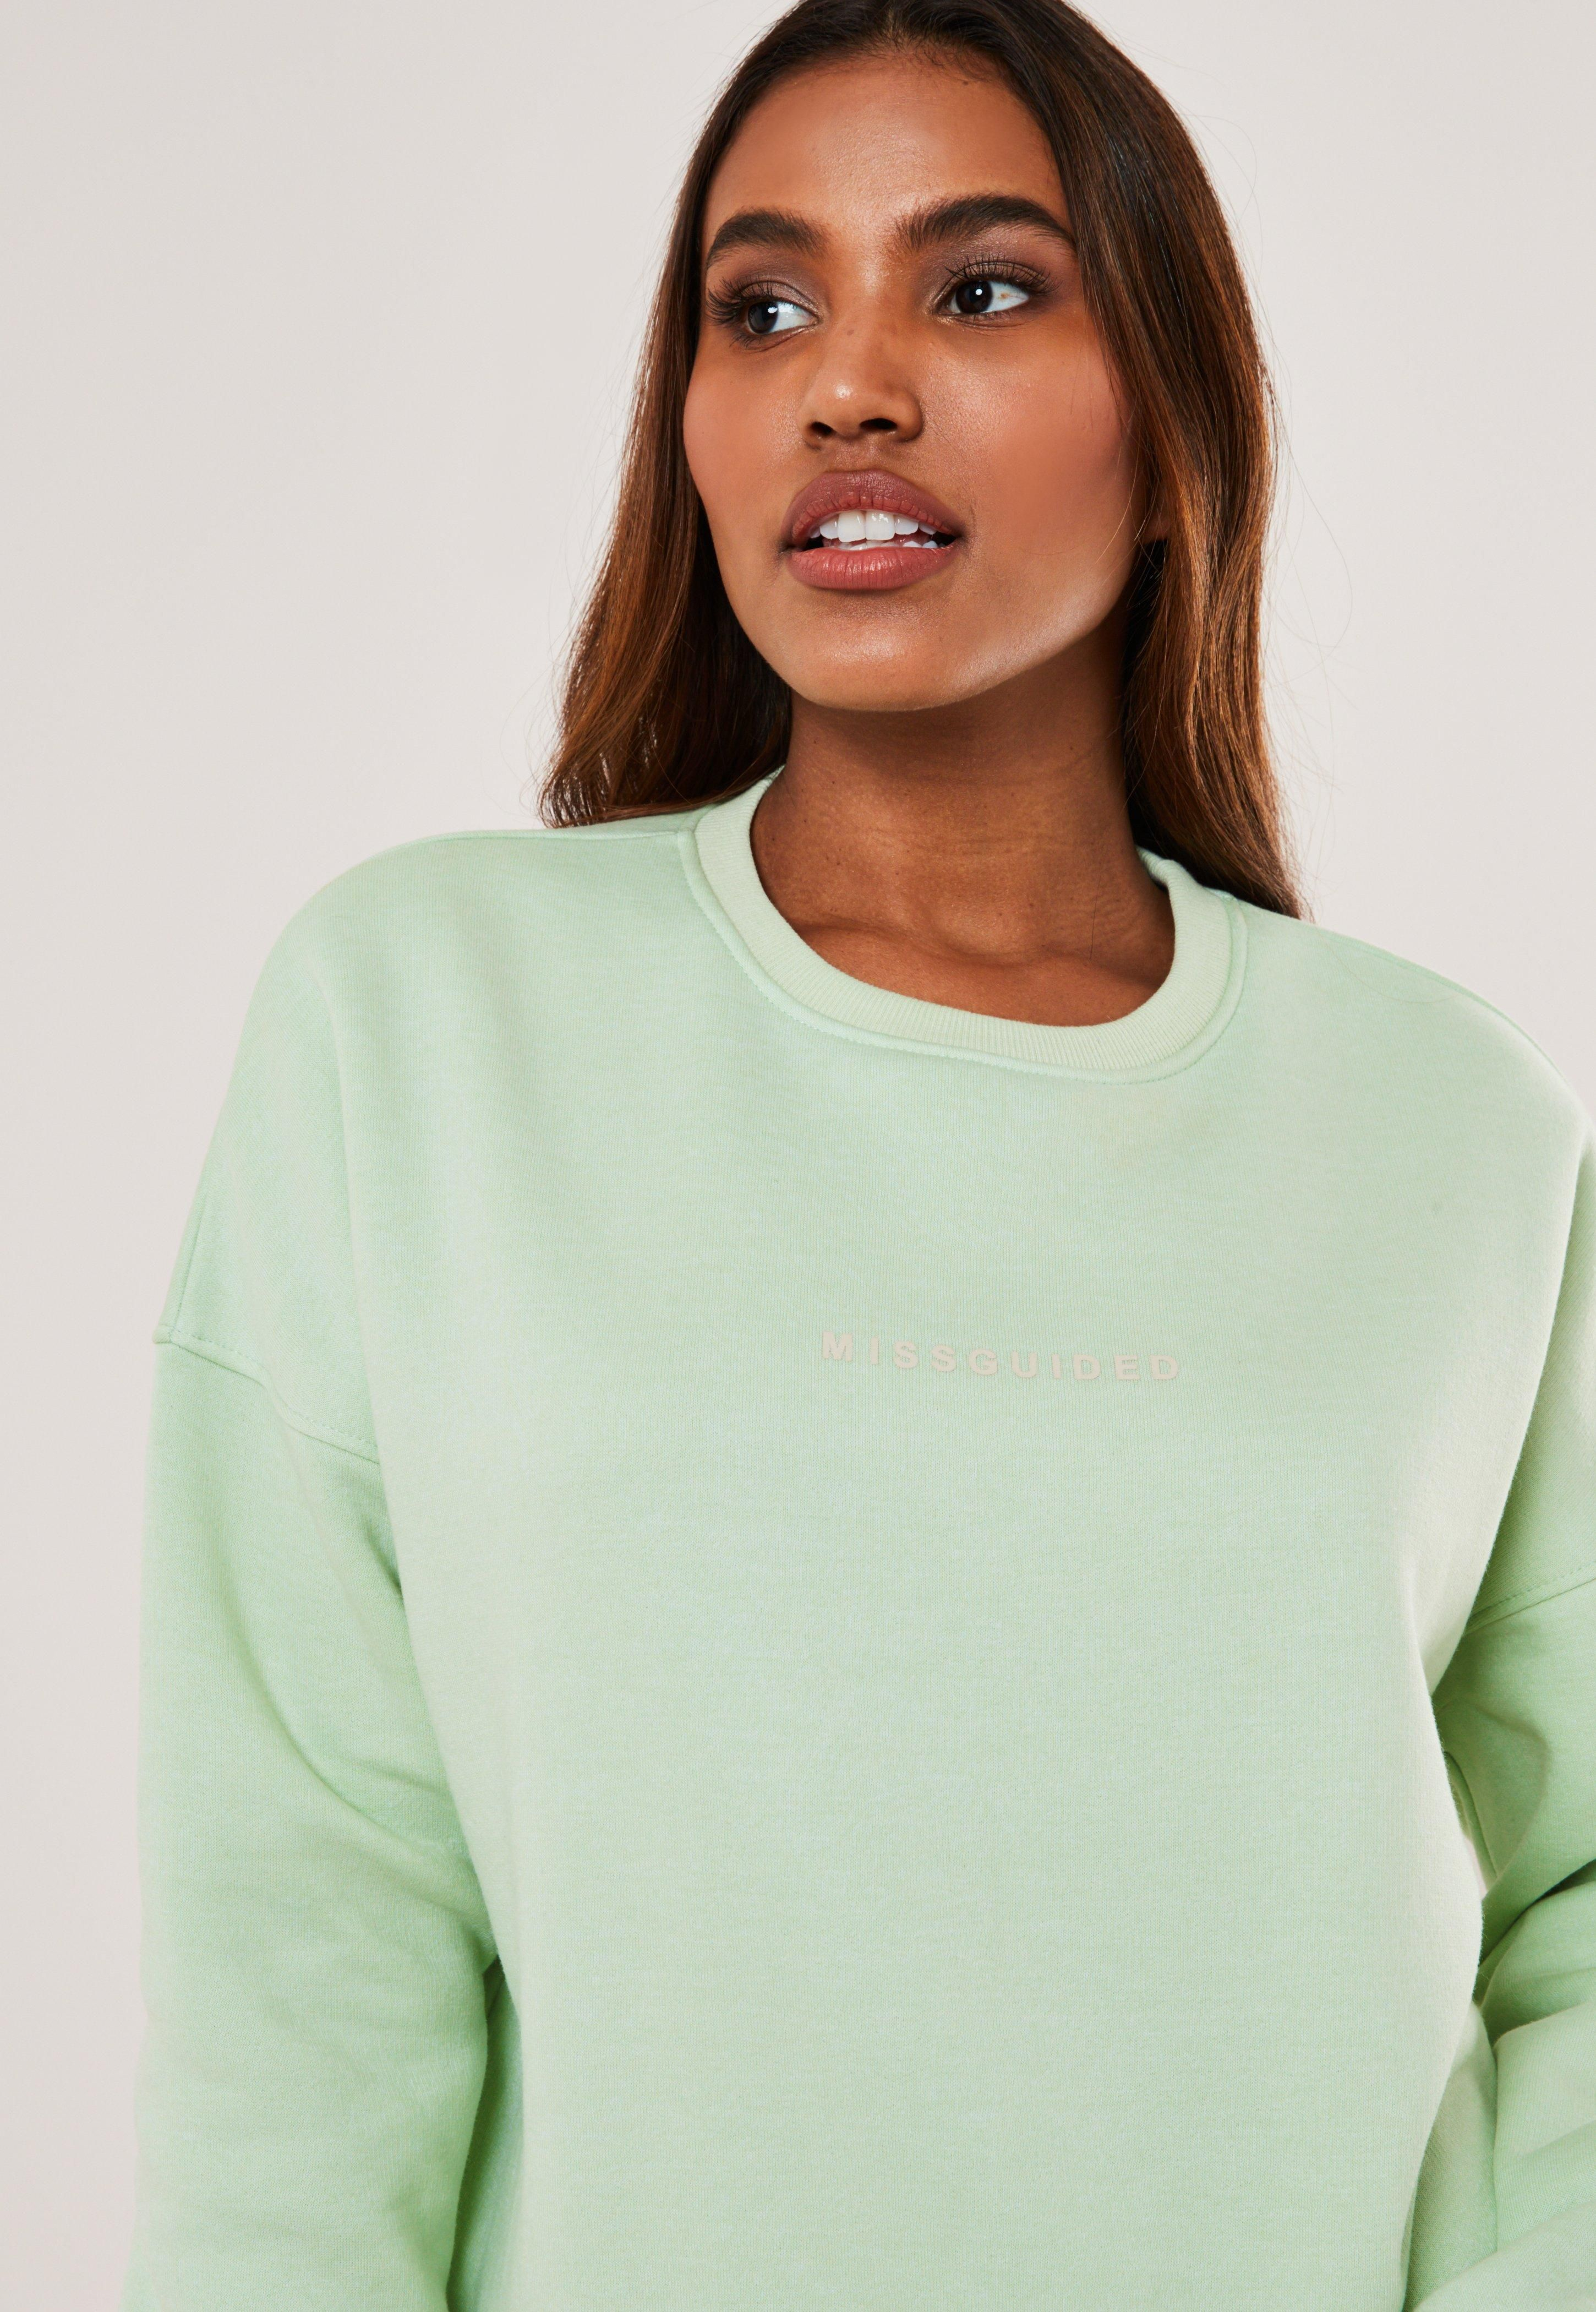 Green Missguided Oversized Crew Neck Sweatshirt Sponsored Oversized Sponsored Missguided Green Crew Neck Sweatshirt Womens Tops Sweatshirts [ 4200 x 2900 Pixel ]